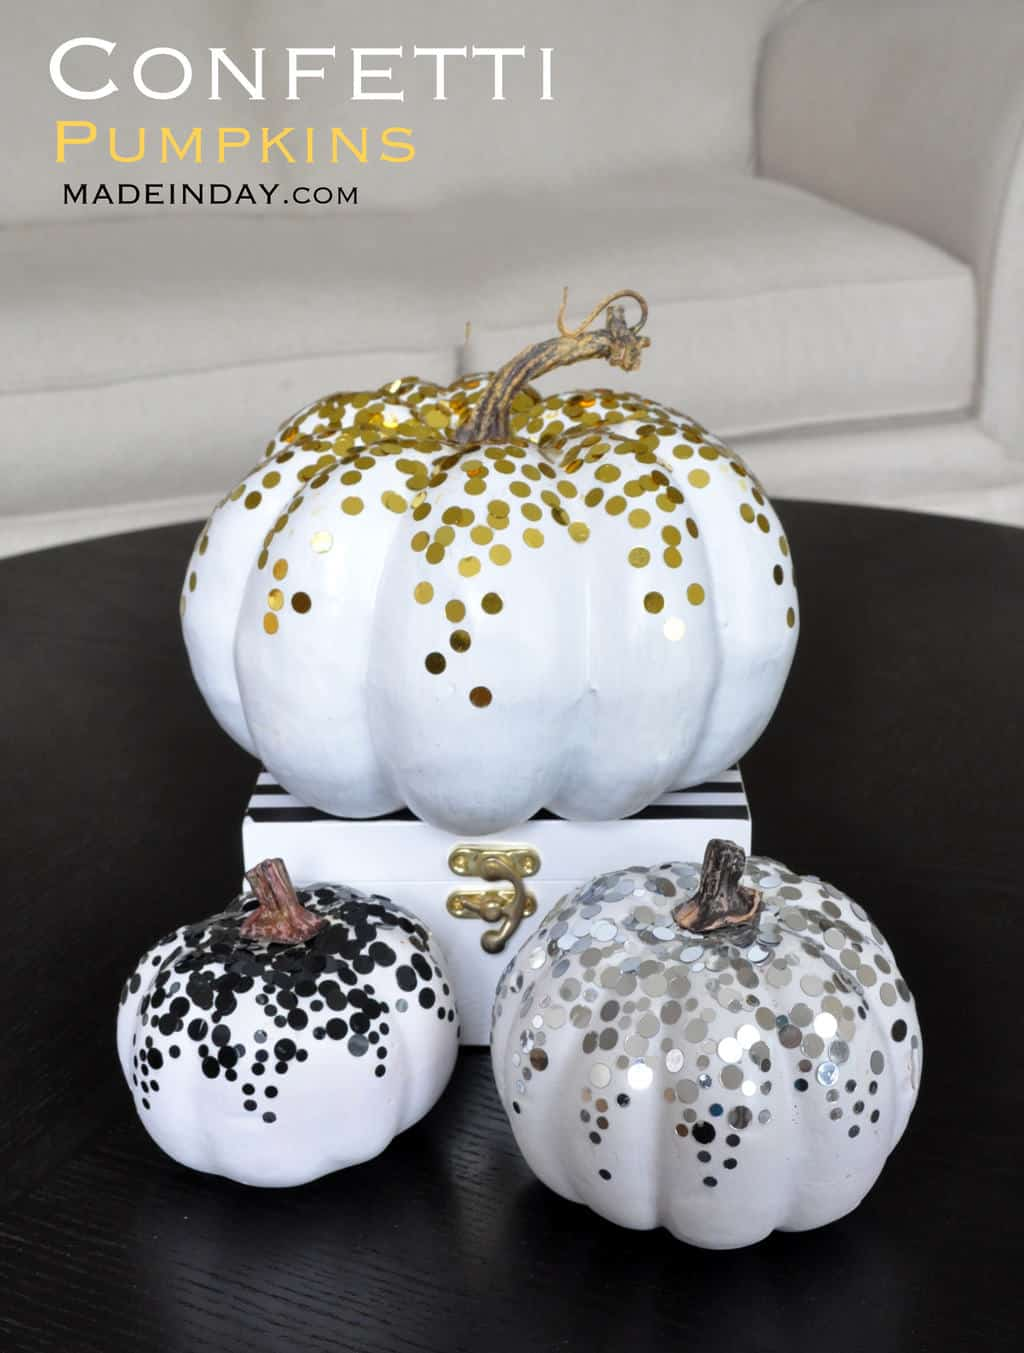 Glam Confetti Pumpkins - Looking for original no carve DIY pumpkin decorating ideas? Use them for Halloween & Thanksgiving for an amazing fall decor. Home DIY for Fall holidays